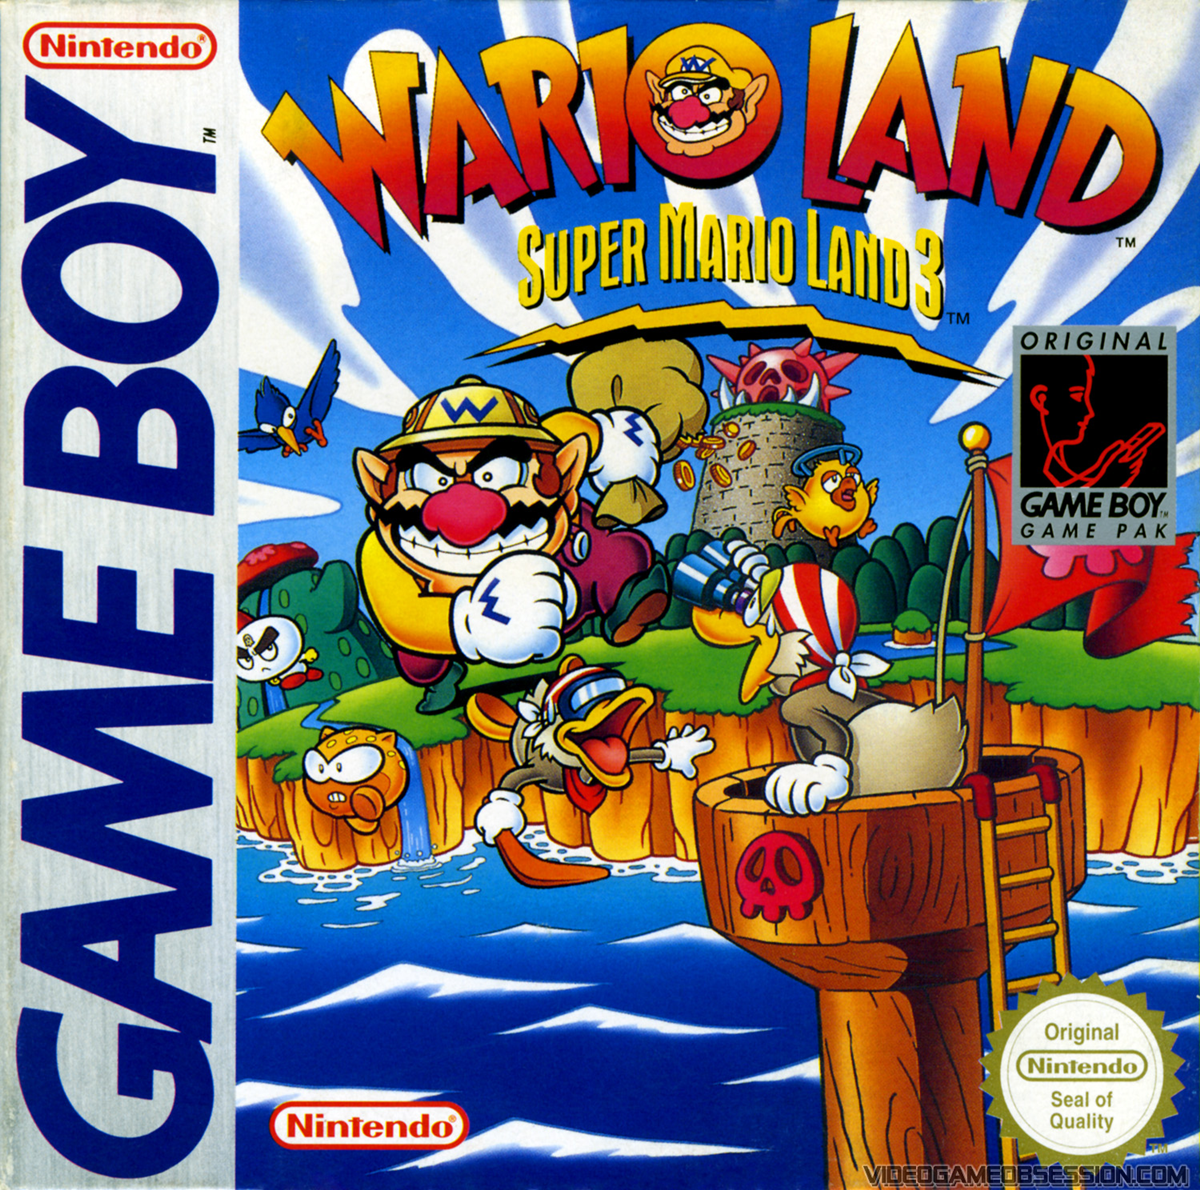 WARIO Do You Own Any Of These Computer Games That Sell For Big Money On Ebay?